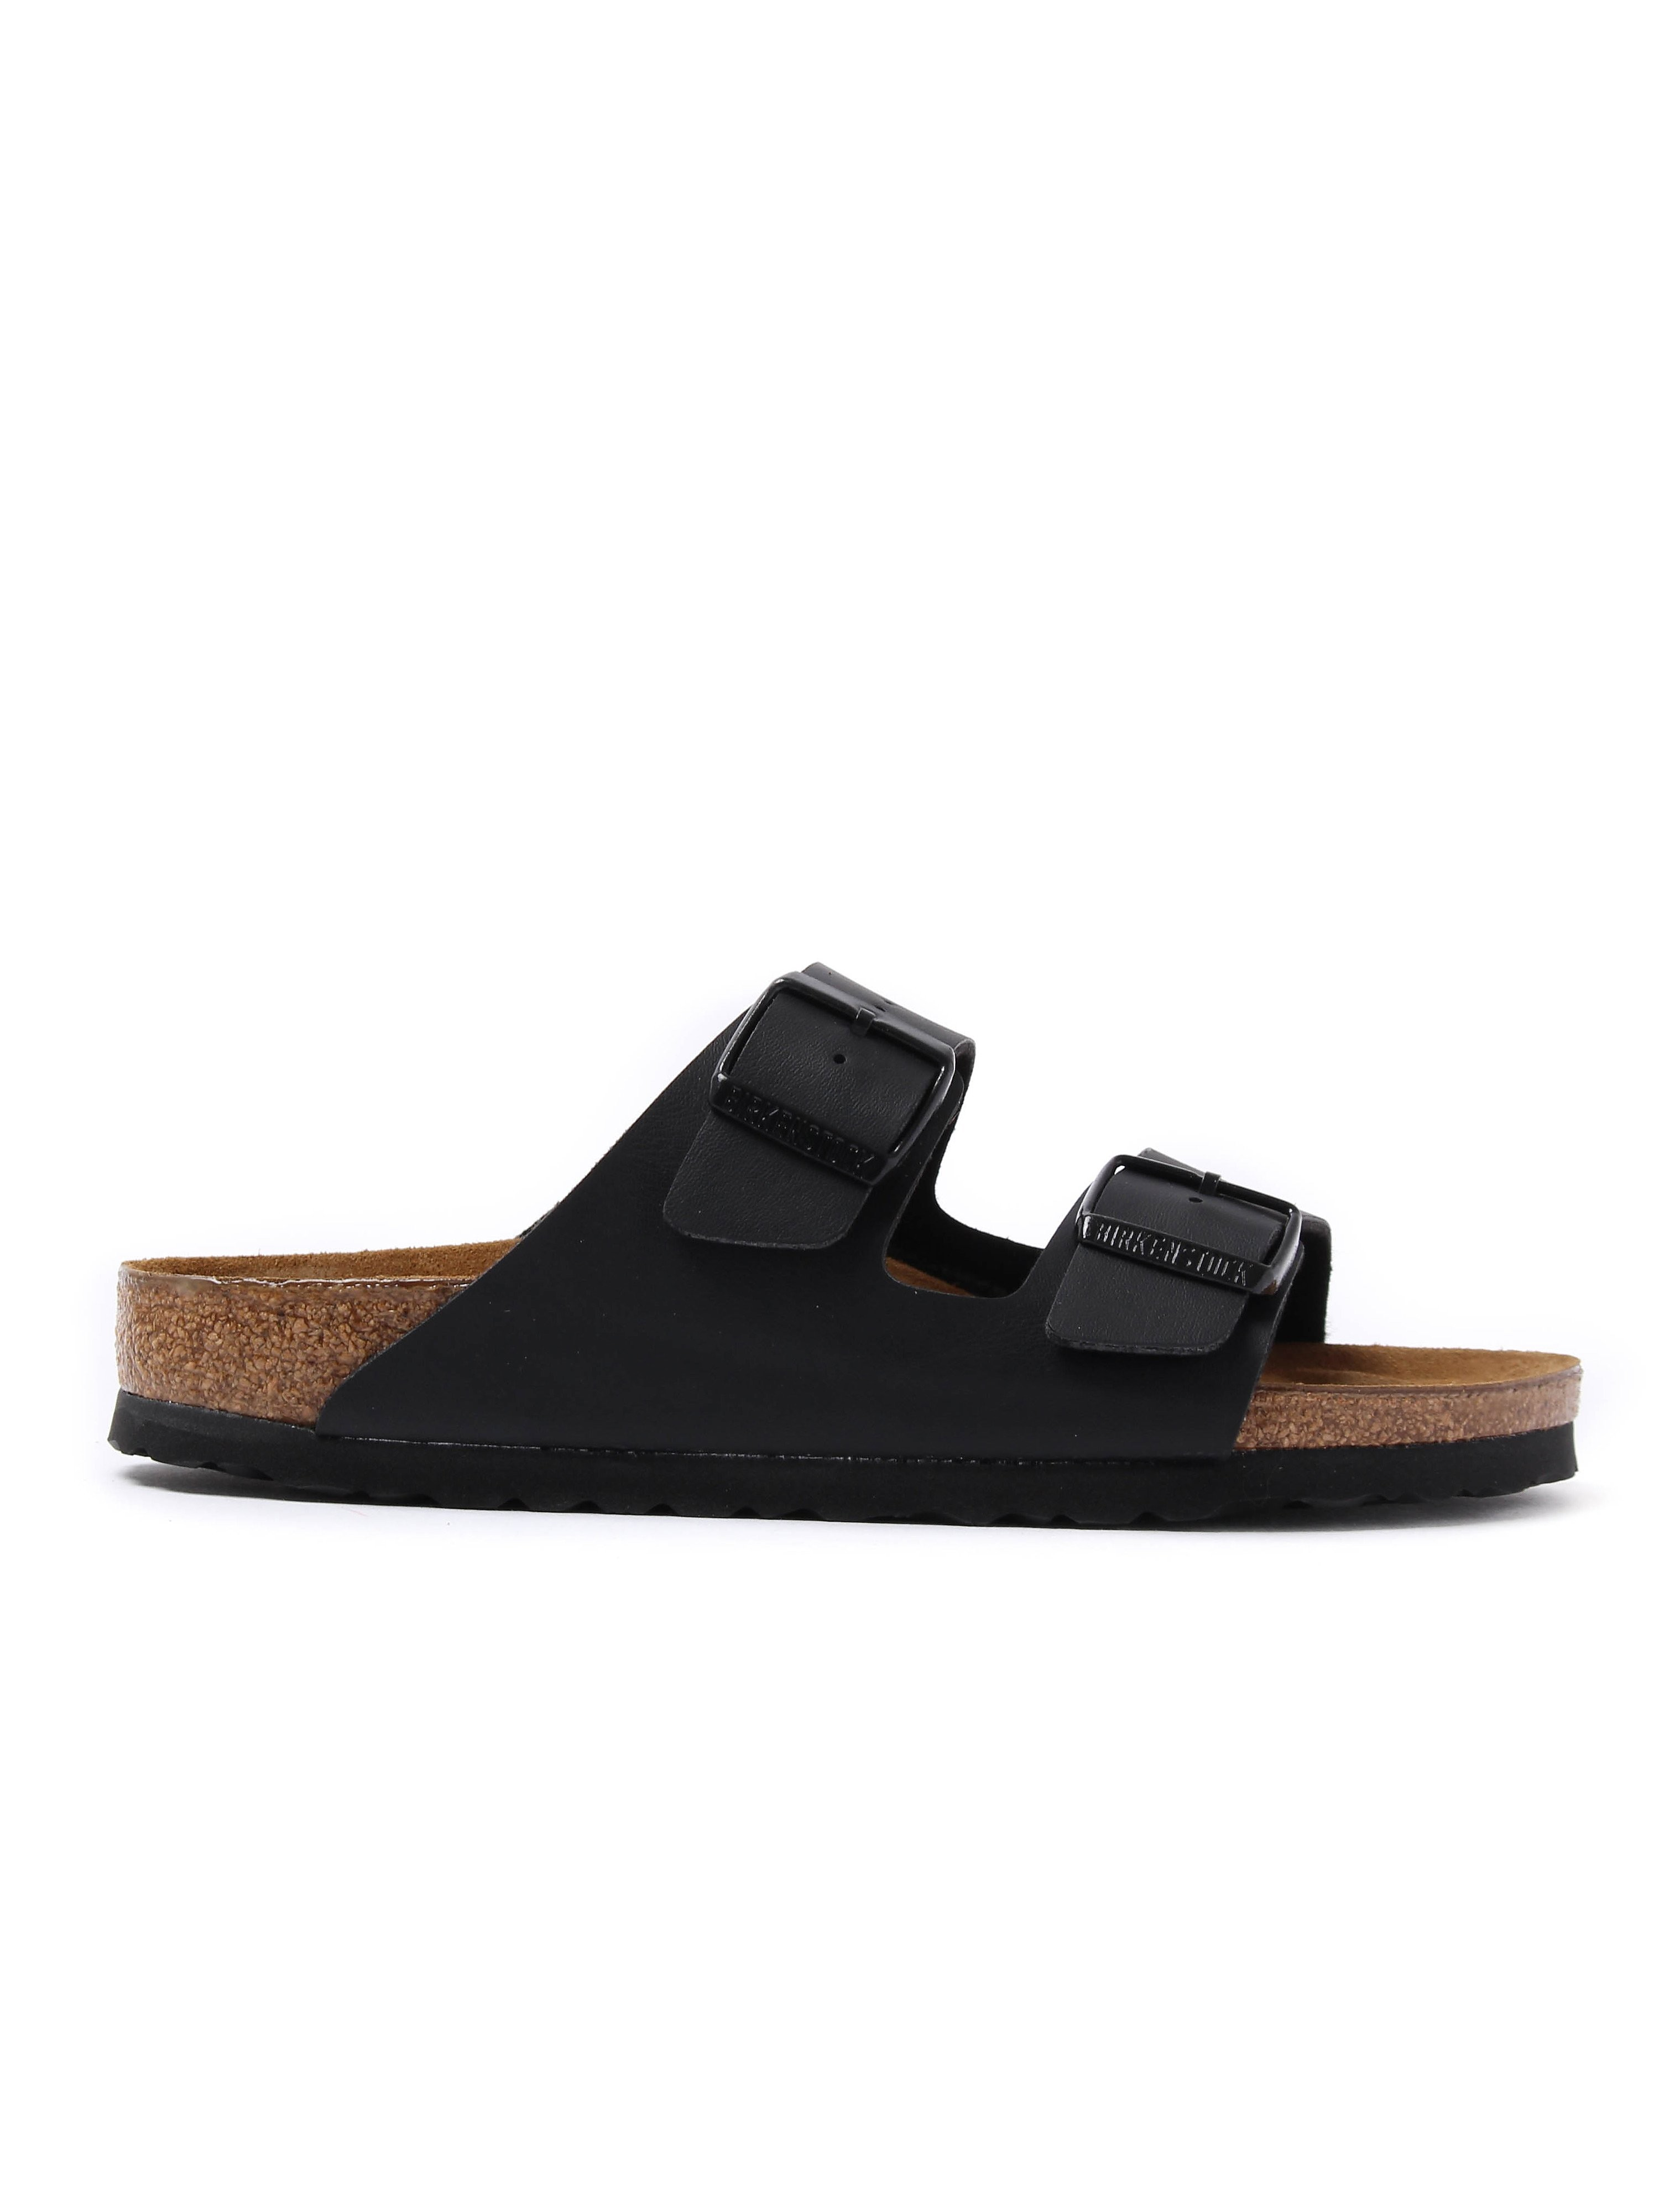 Birkenstock Womens Arizona Double Strap Leather Narrow Fit Sandals - Black